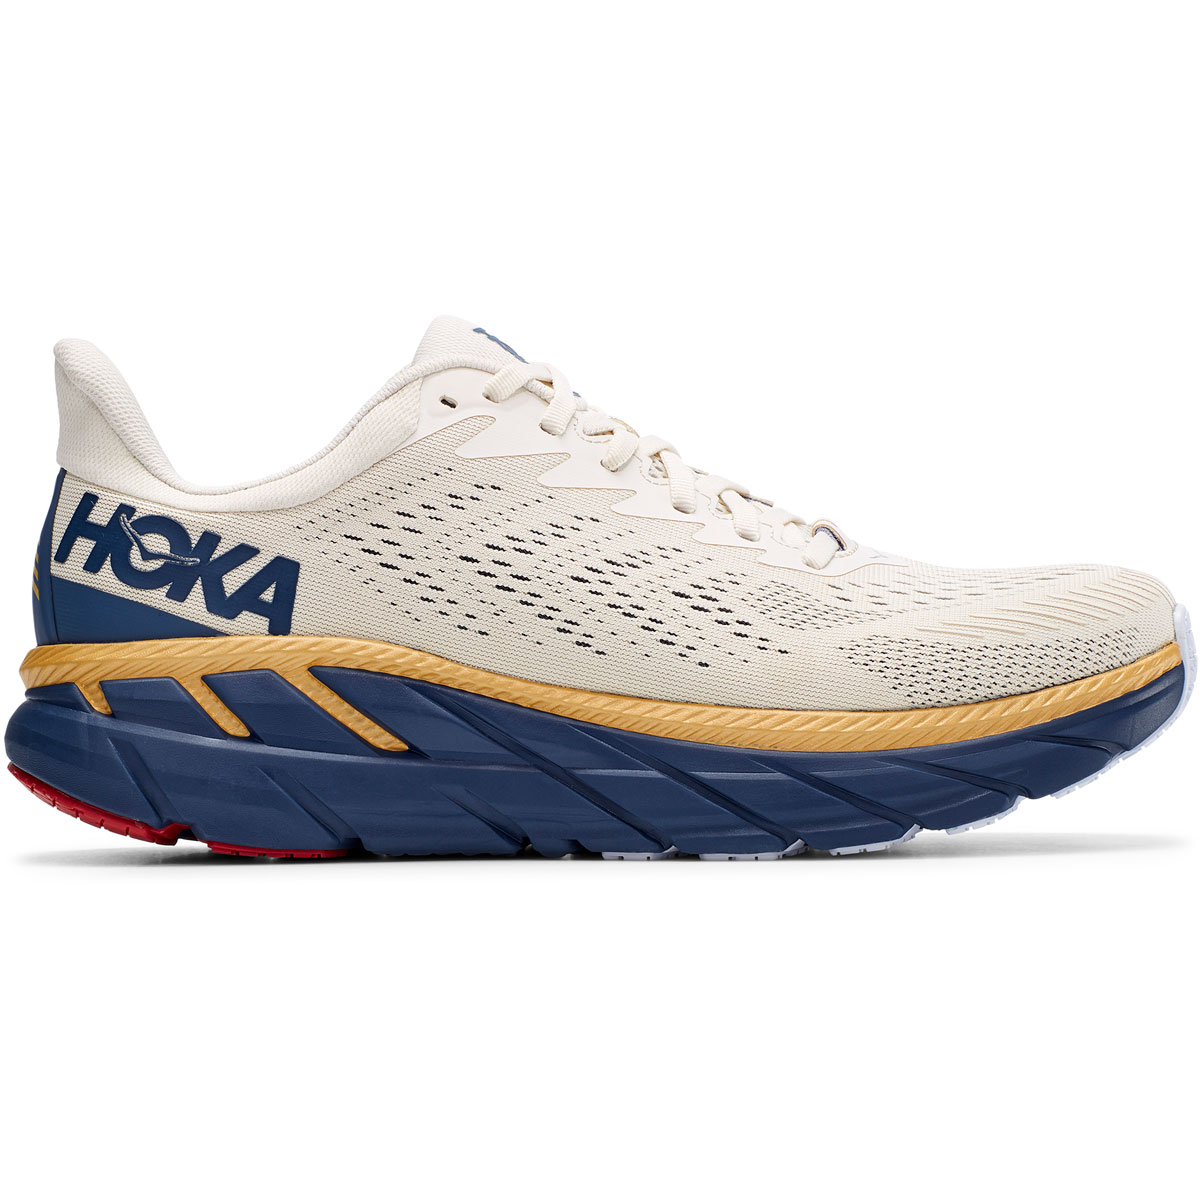 Men's Hoka One One Clifton 7 Running Shoe - Color: Tofu/Vintage - Size: 7 - Width: Regular, Tofu/Vintage, large, image 1